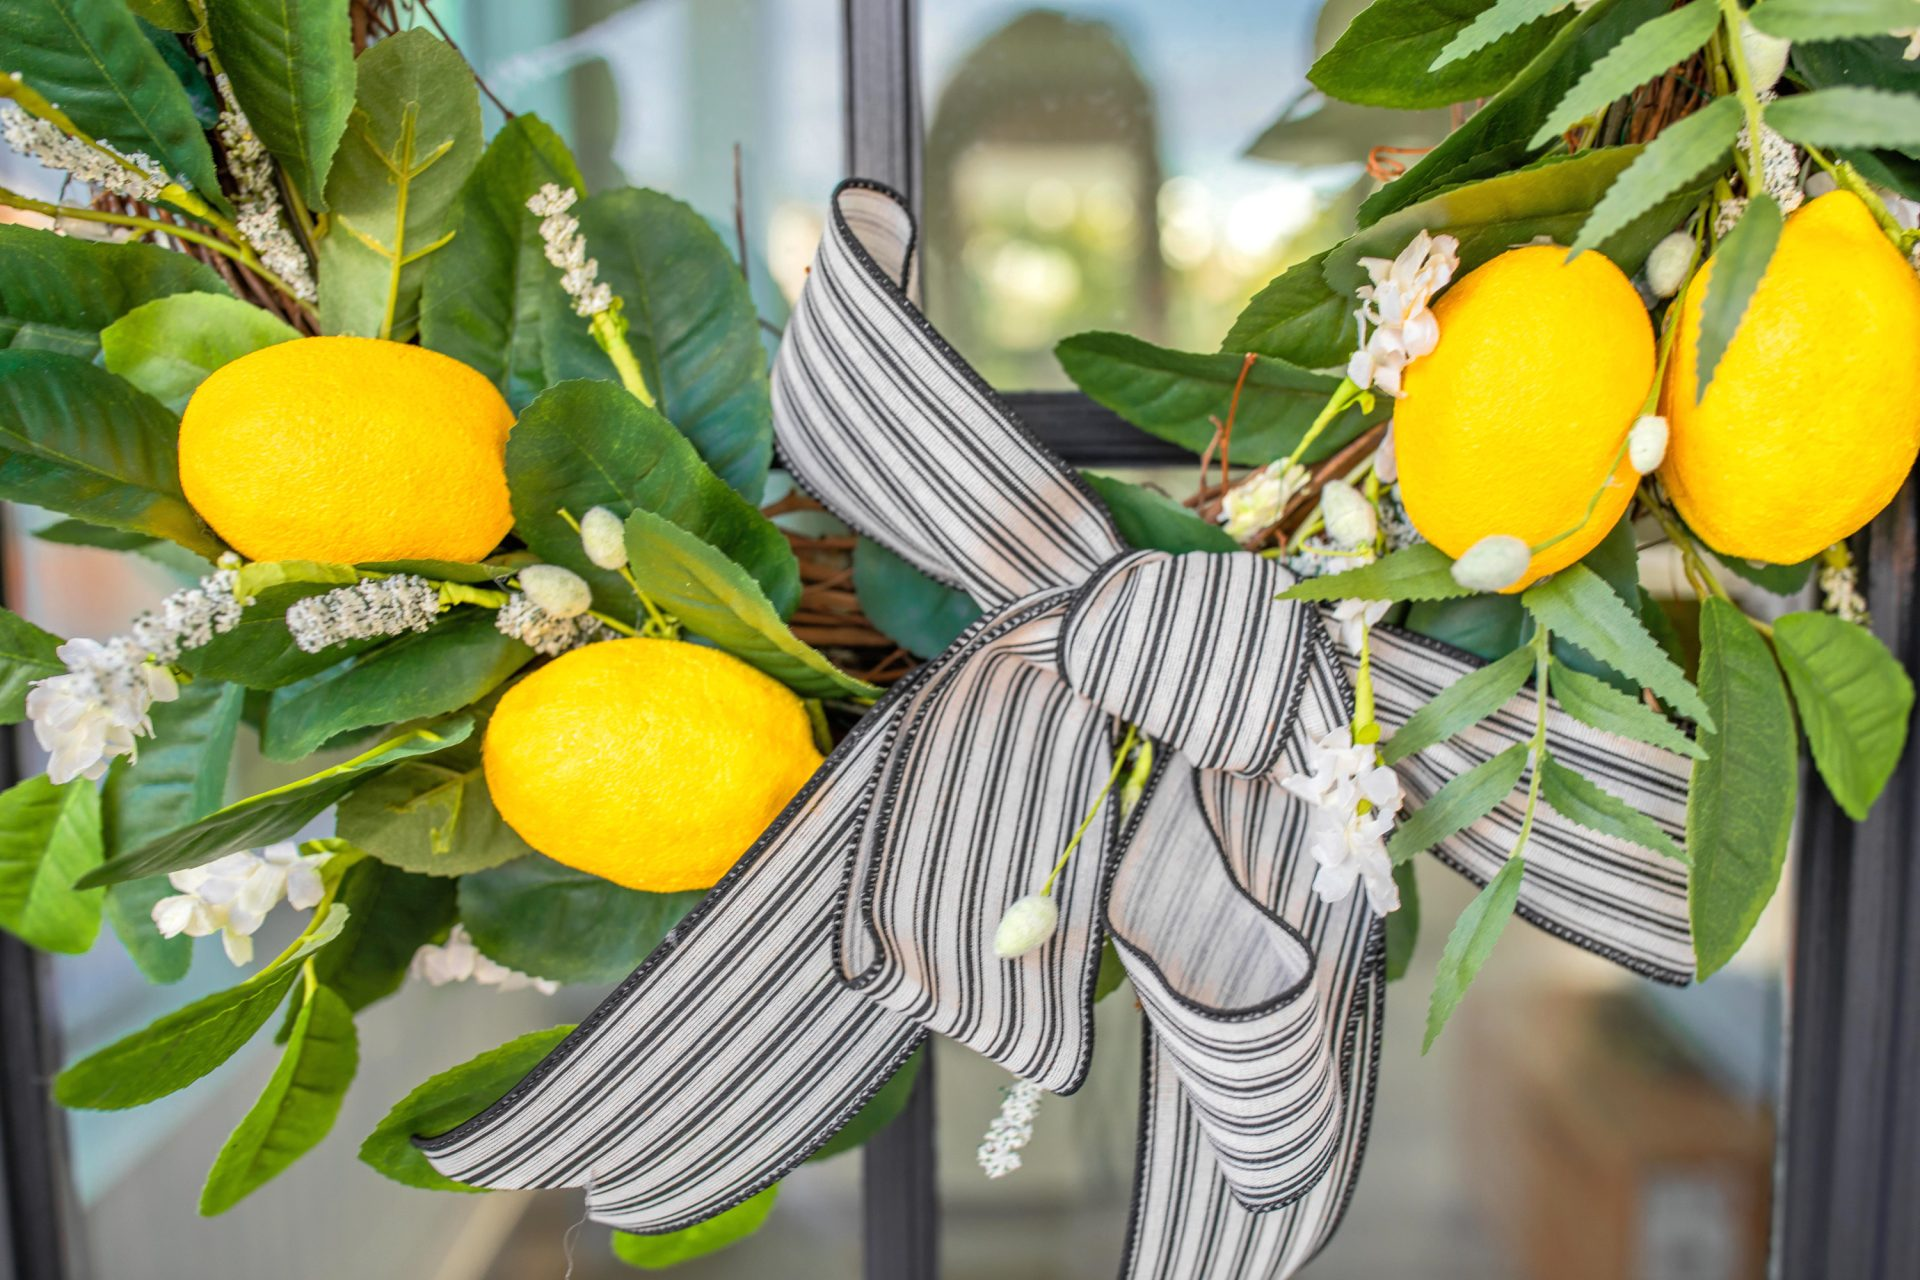 diy, wreath, summer decor, home design, front porch, lemon wreath, do it yourself, lemon wreath, lemon decor, how to make, crafts, how to, home, citrus, decoration